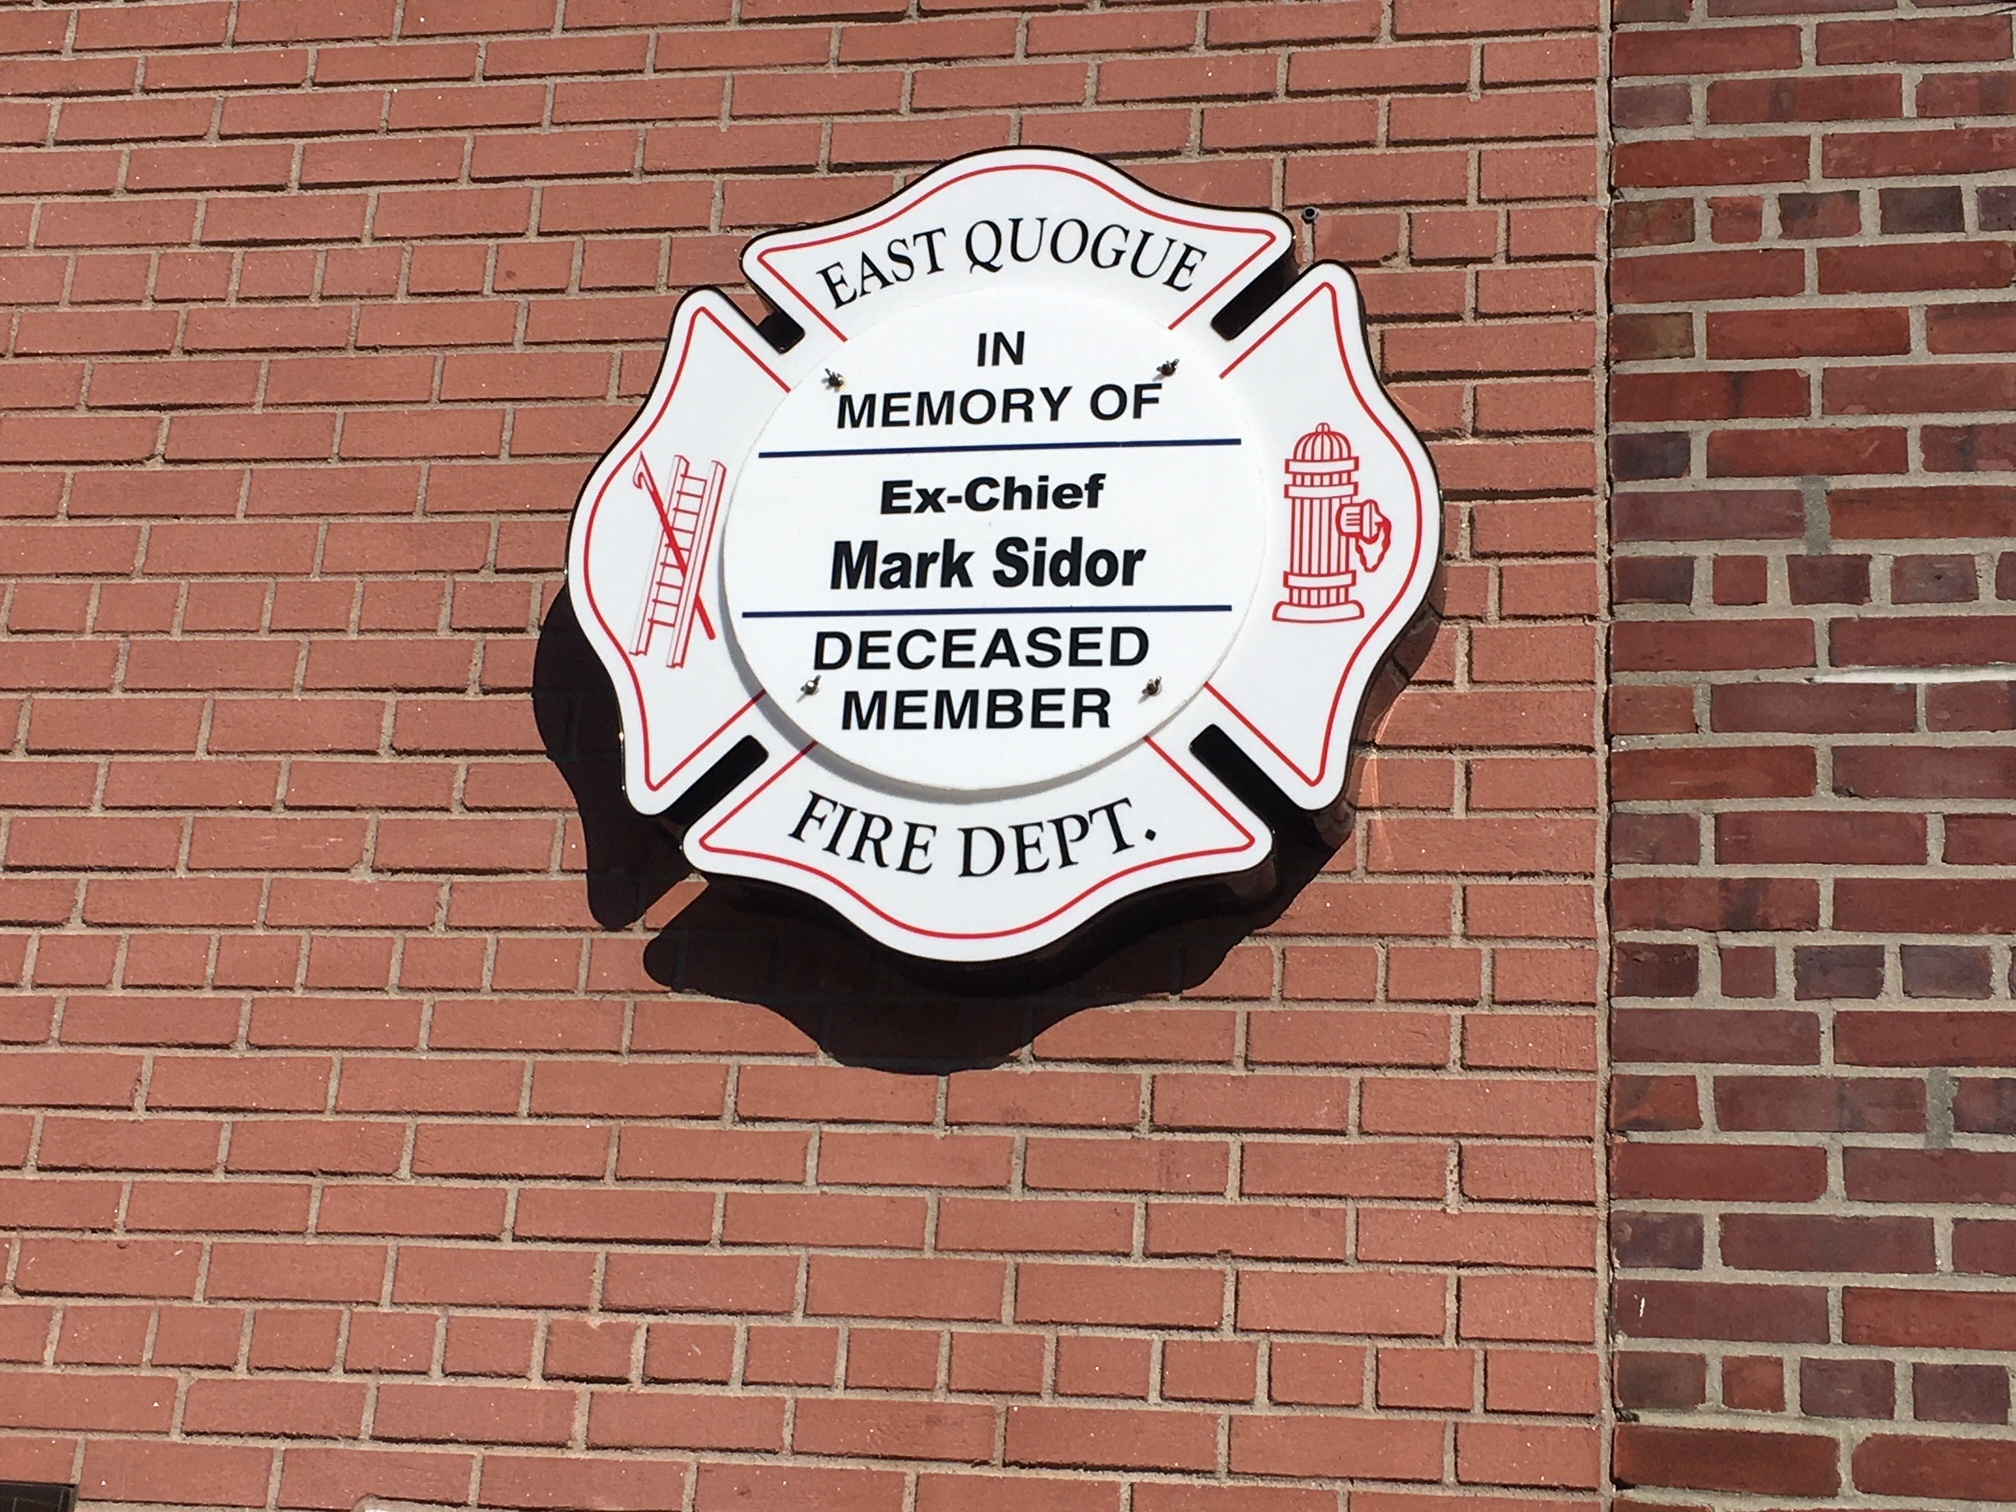 The placque marks Mark Sidor's service with the East Quogue Fire Department.  LORI SIDOR